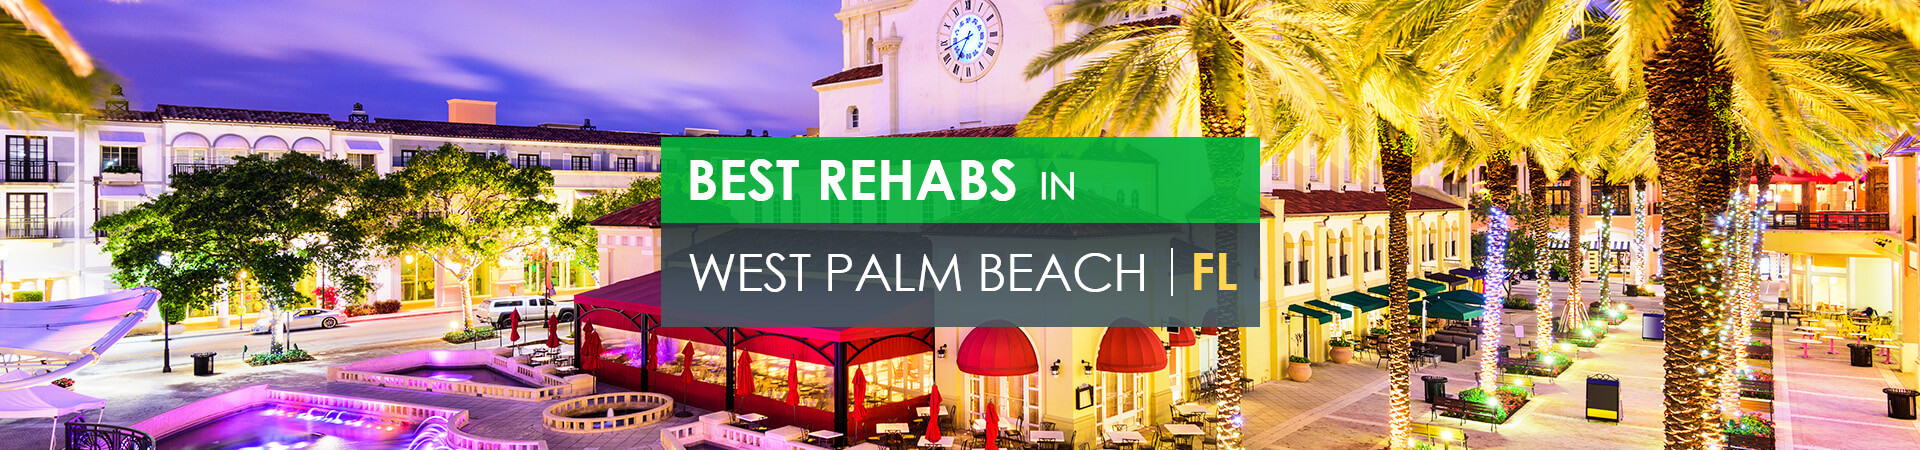 Best rehabs in West Palm Beach, FL